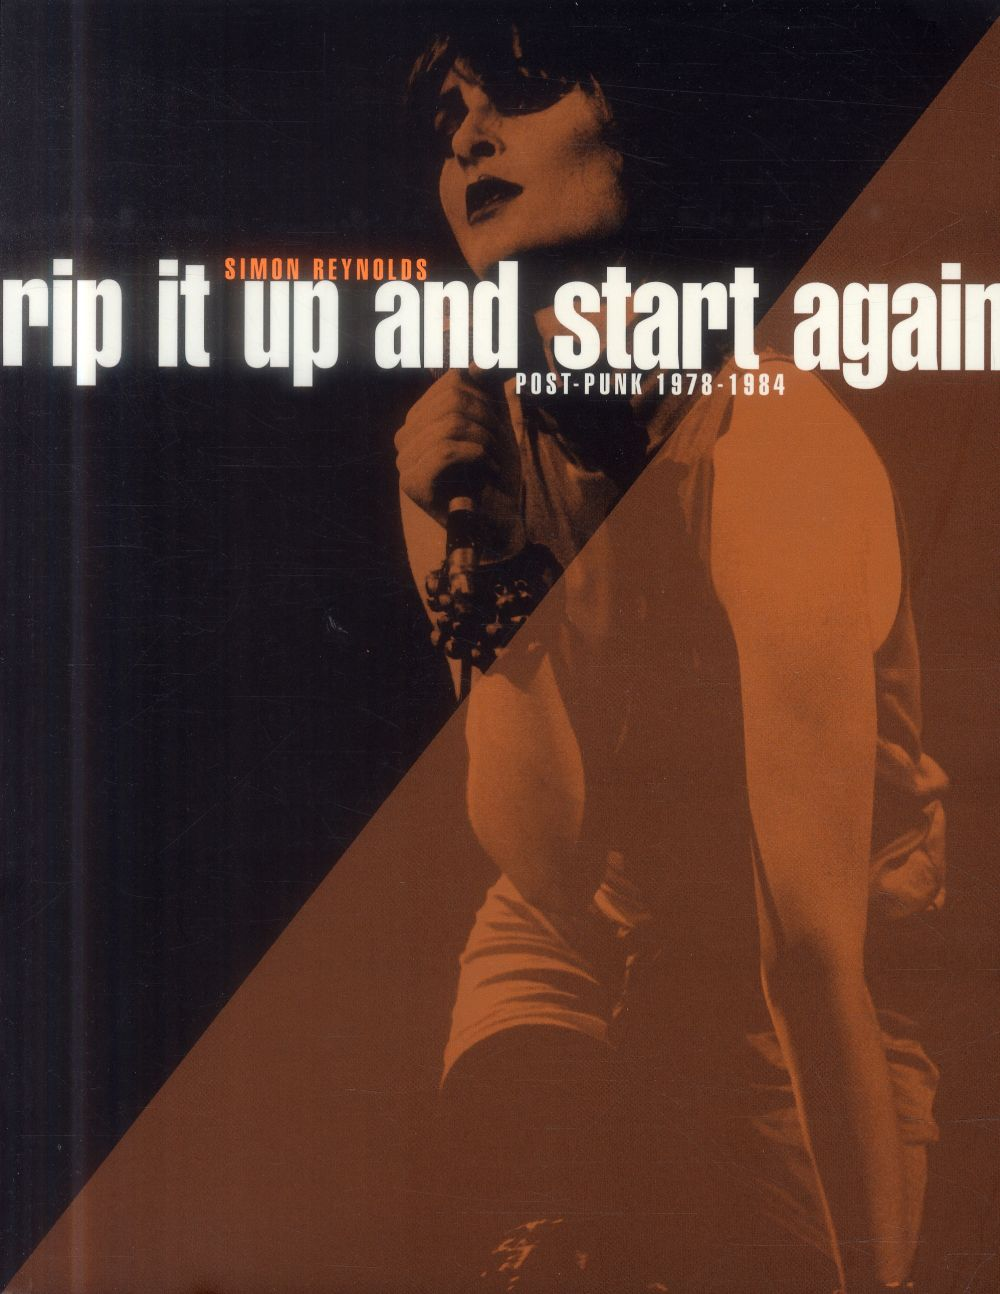 Rip it up and start again ; postpunk 1978-1984